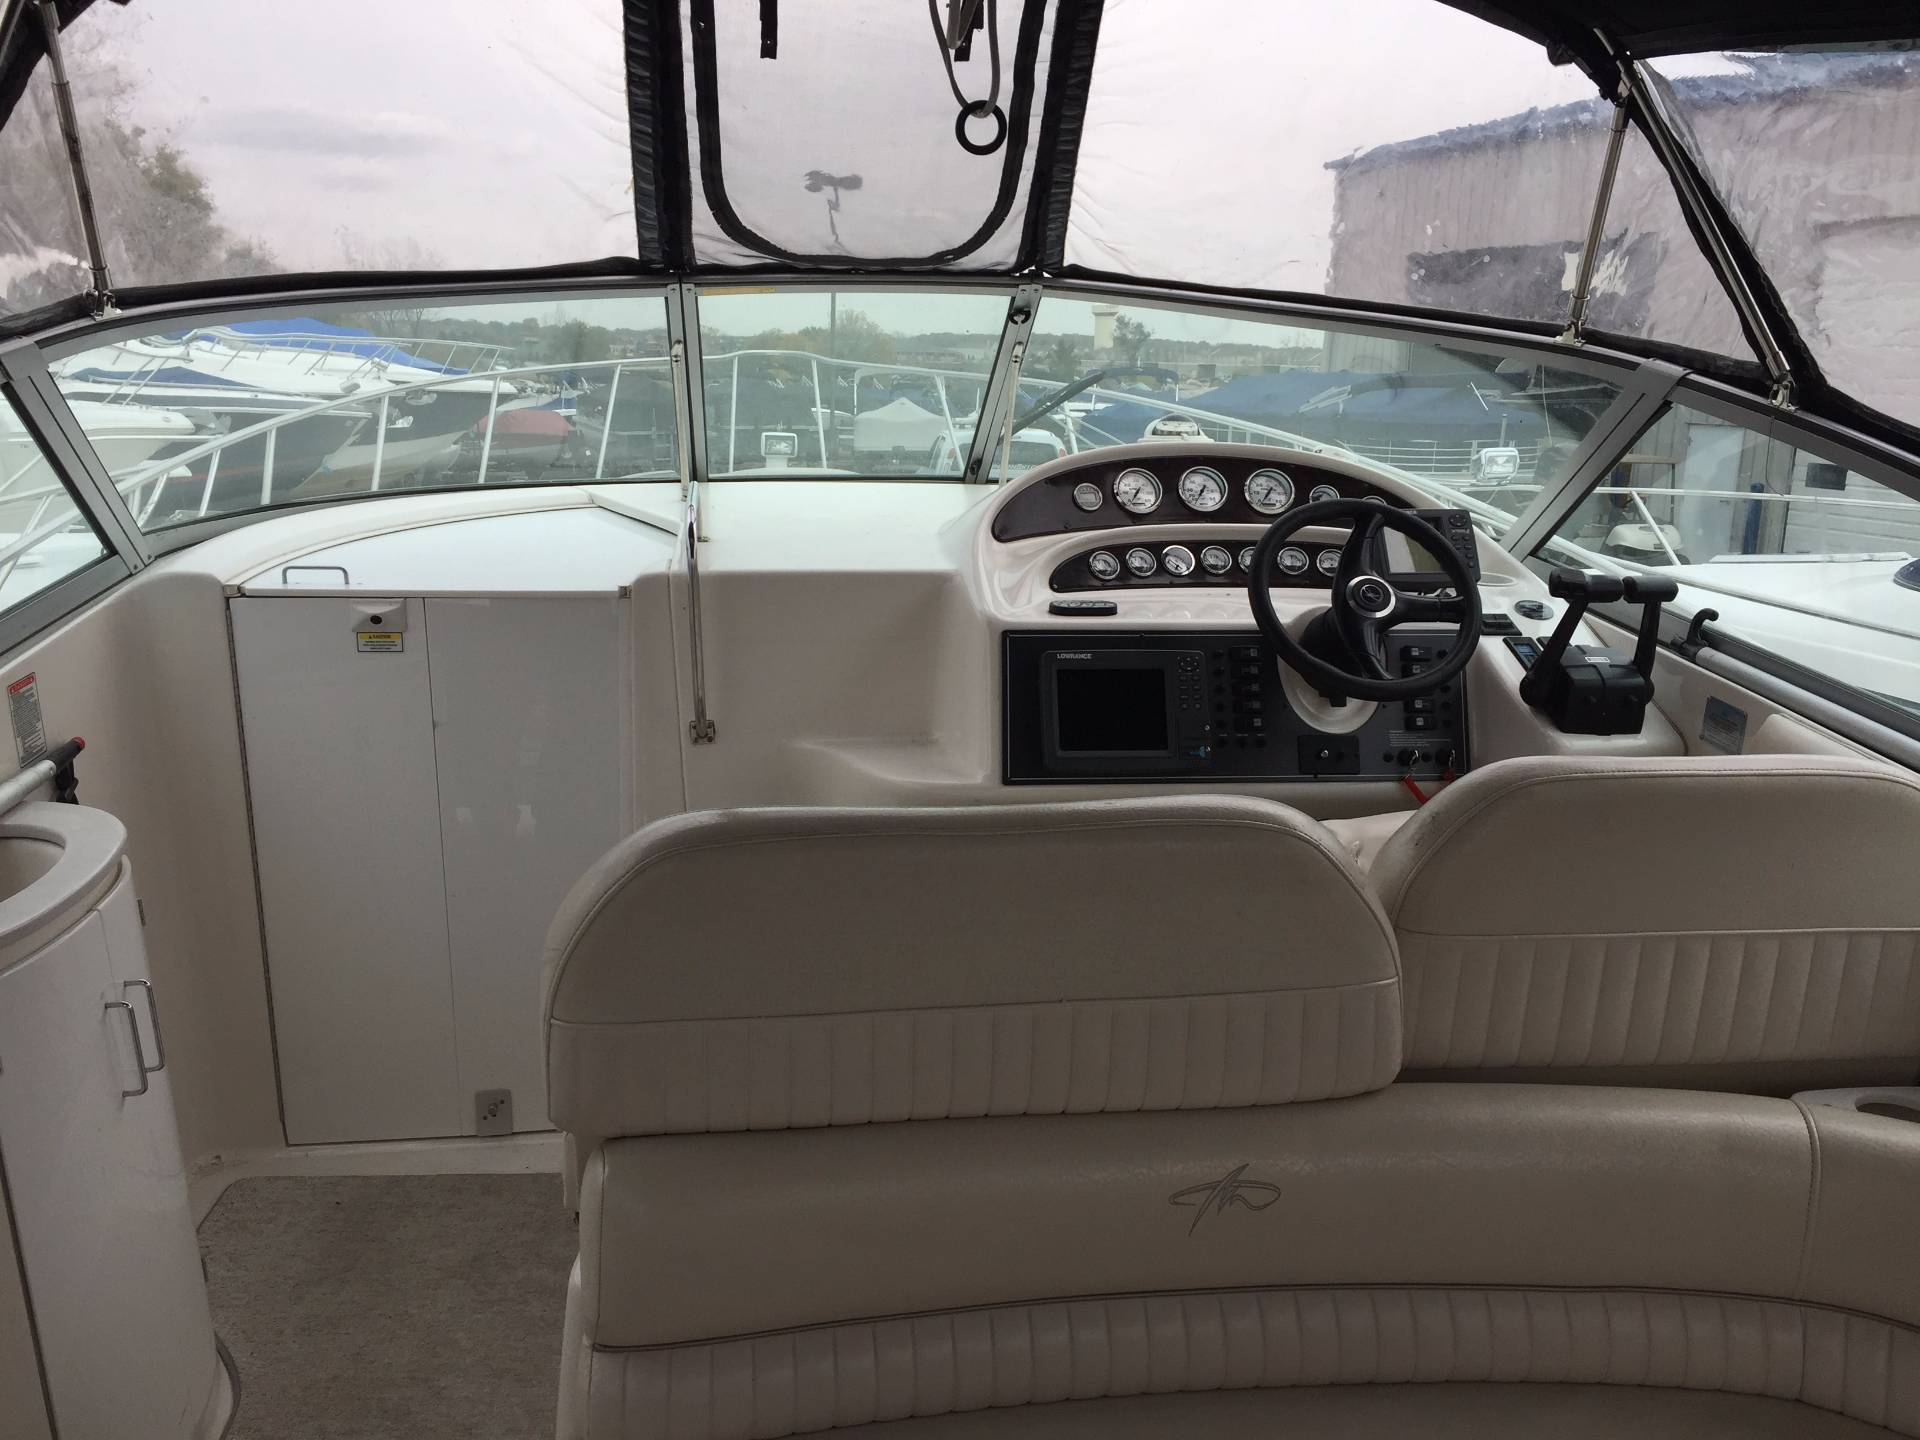 2002 Monterey 322 Cruiser in Round Lake, Illinois